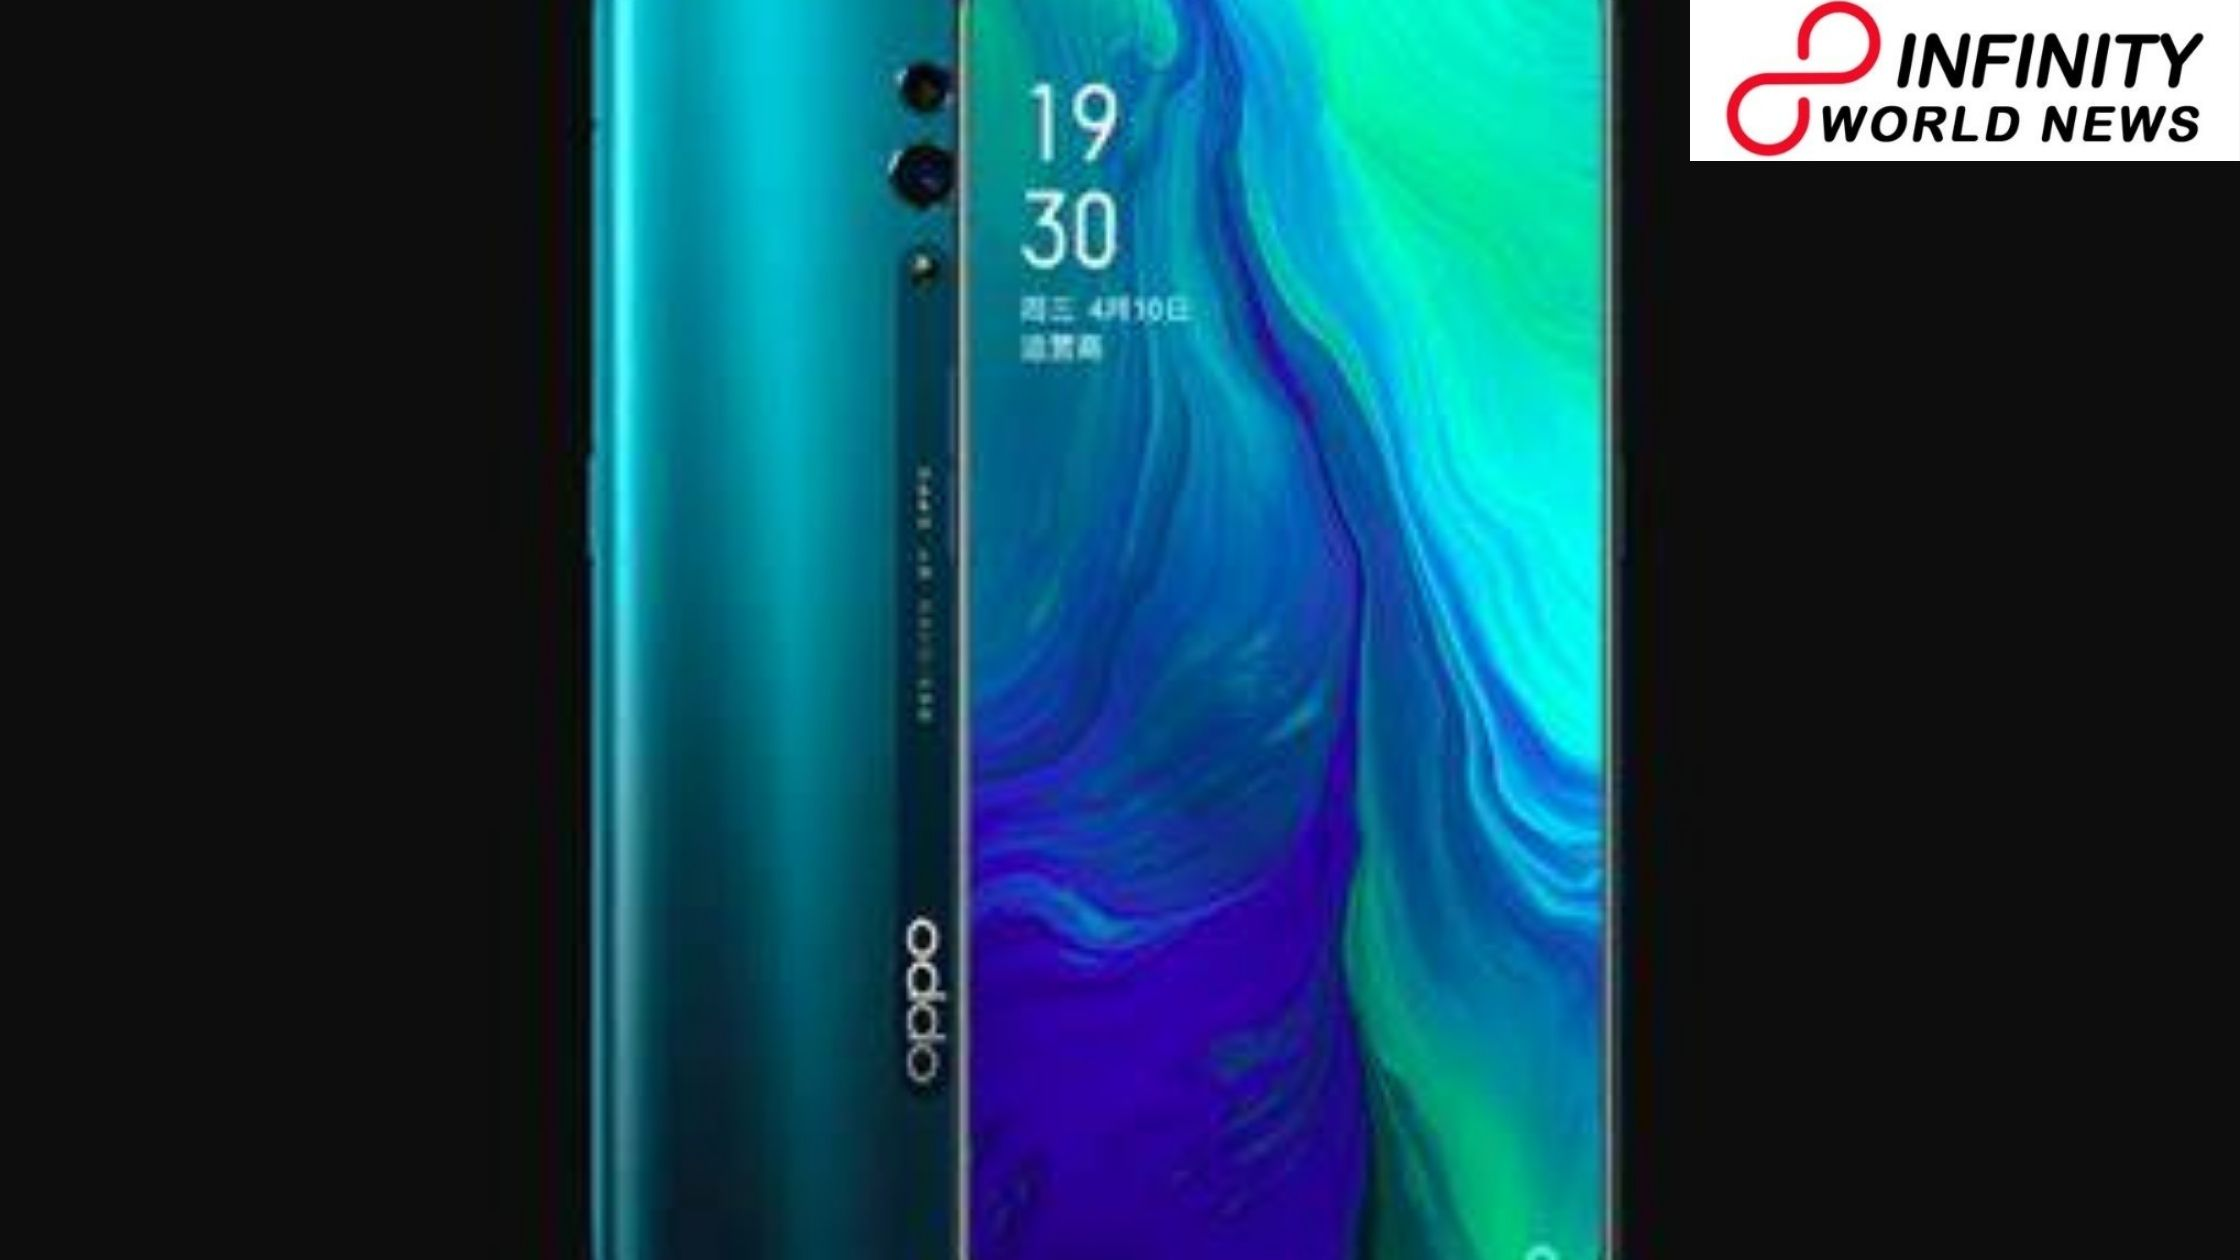 Oppo Reno 5K Price, Specifications Surface Leading of Coming Thursday Launch